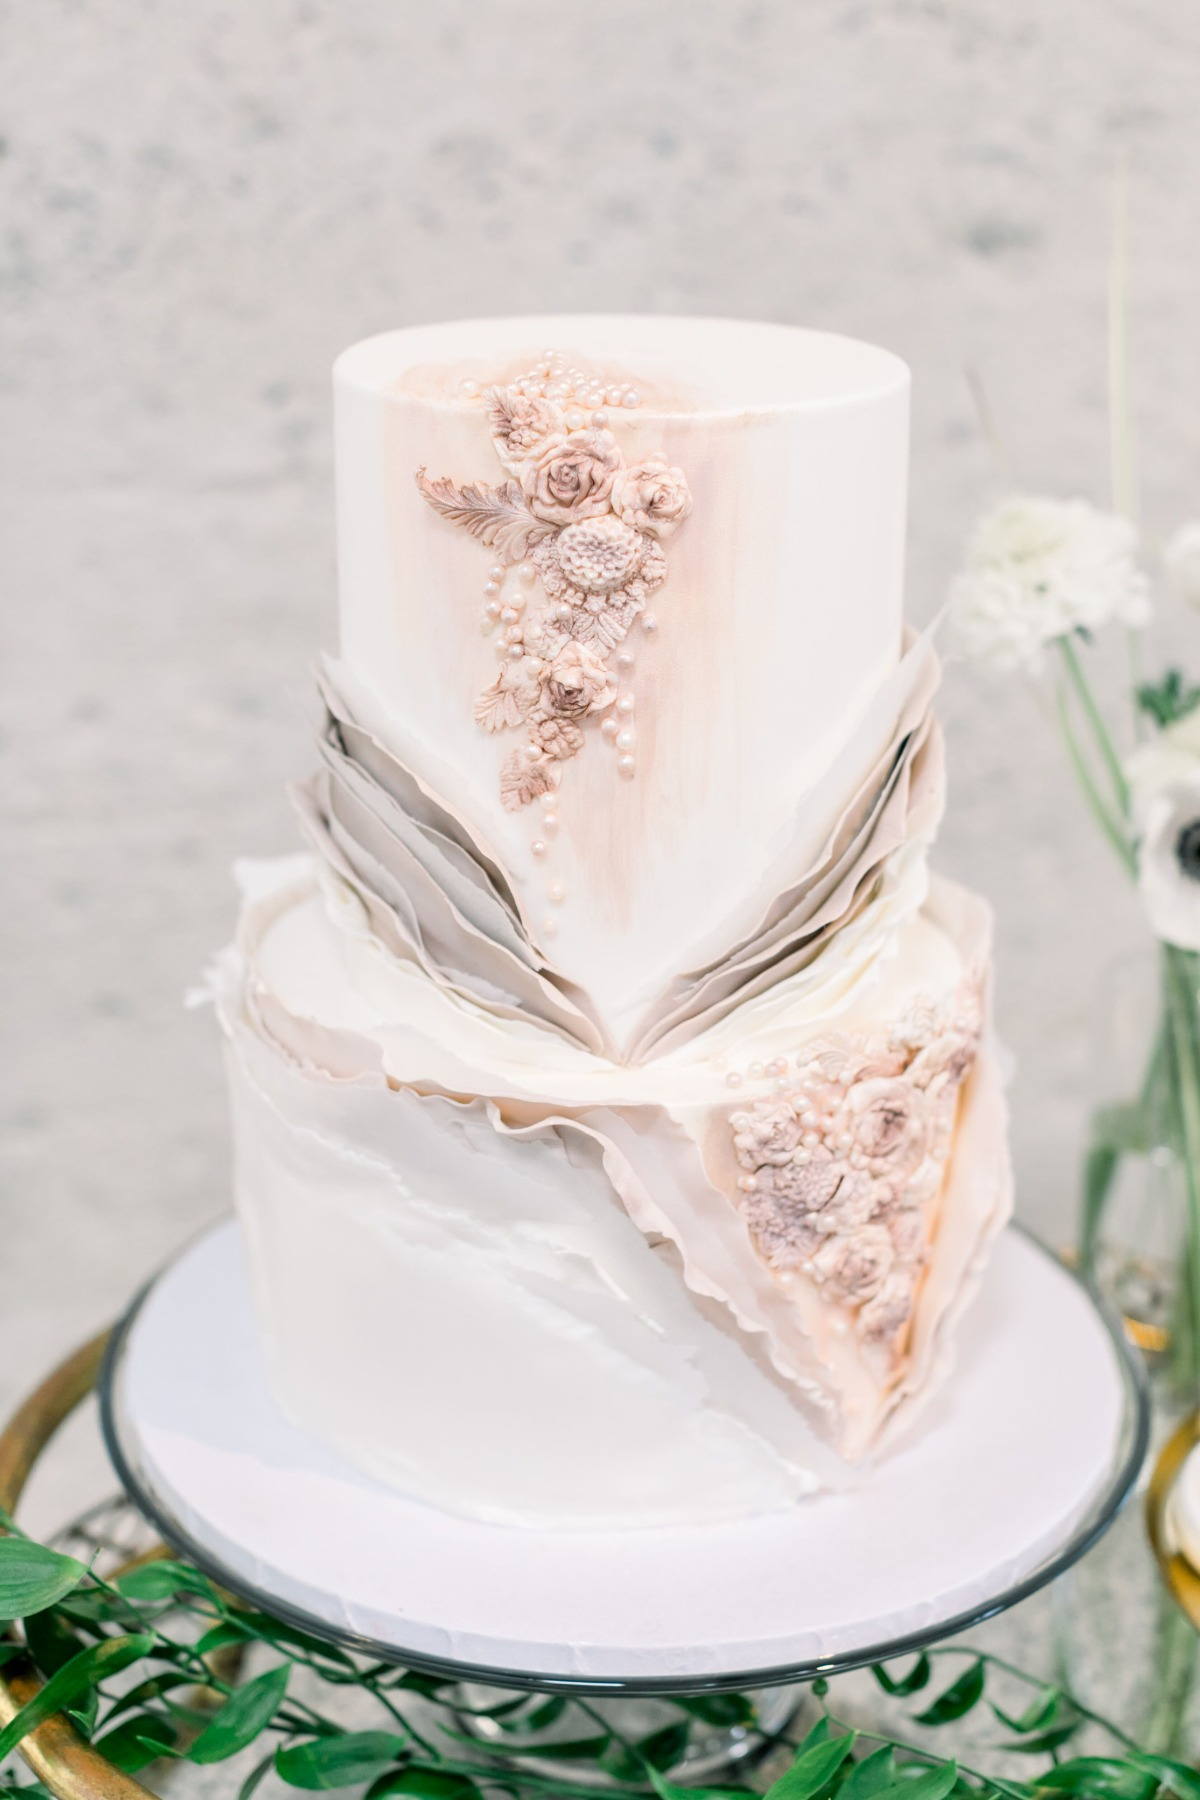 intricate and fancy wedding cake by Vanilla bake shop